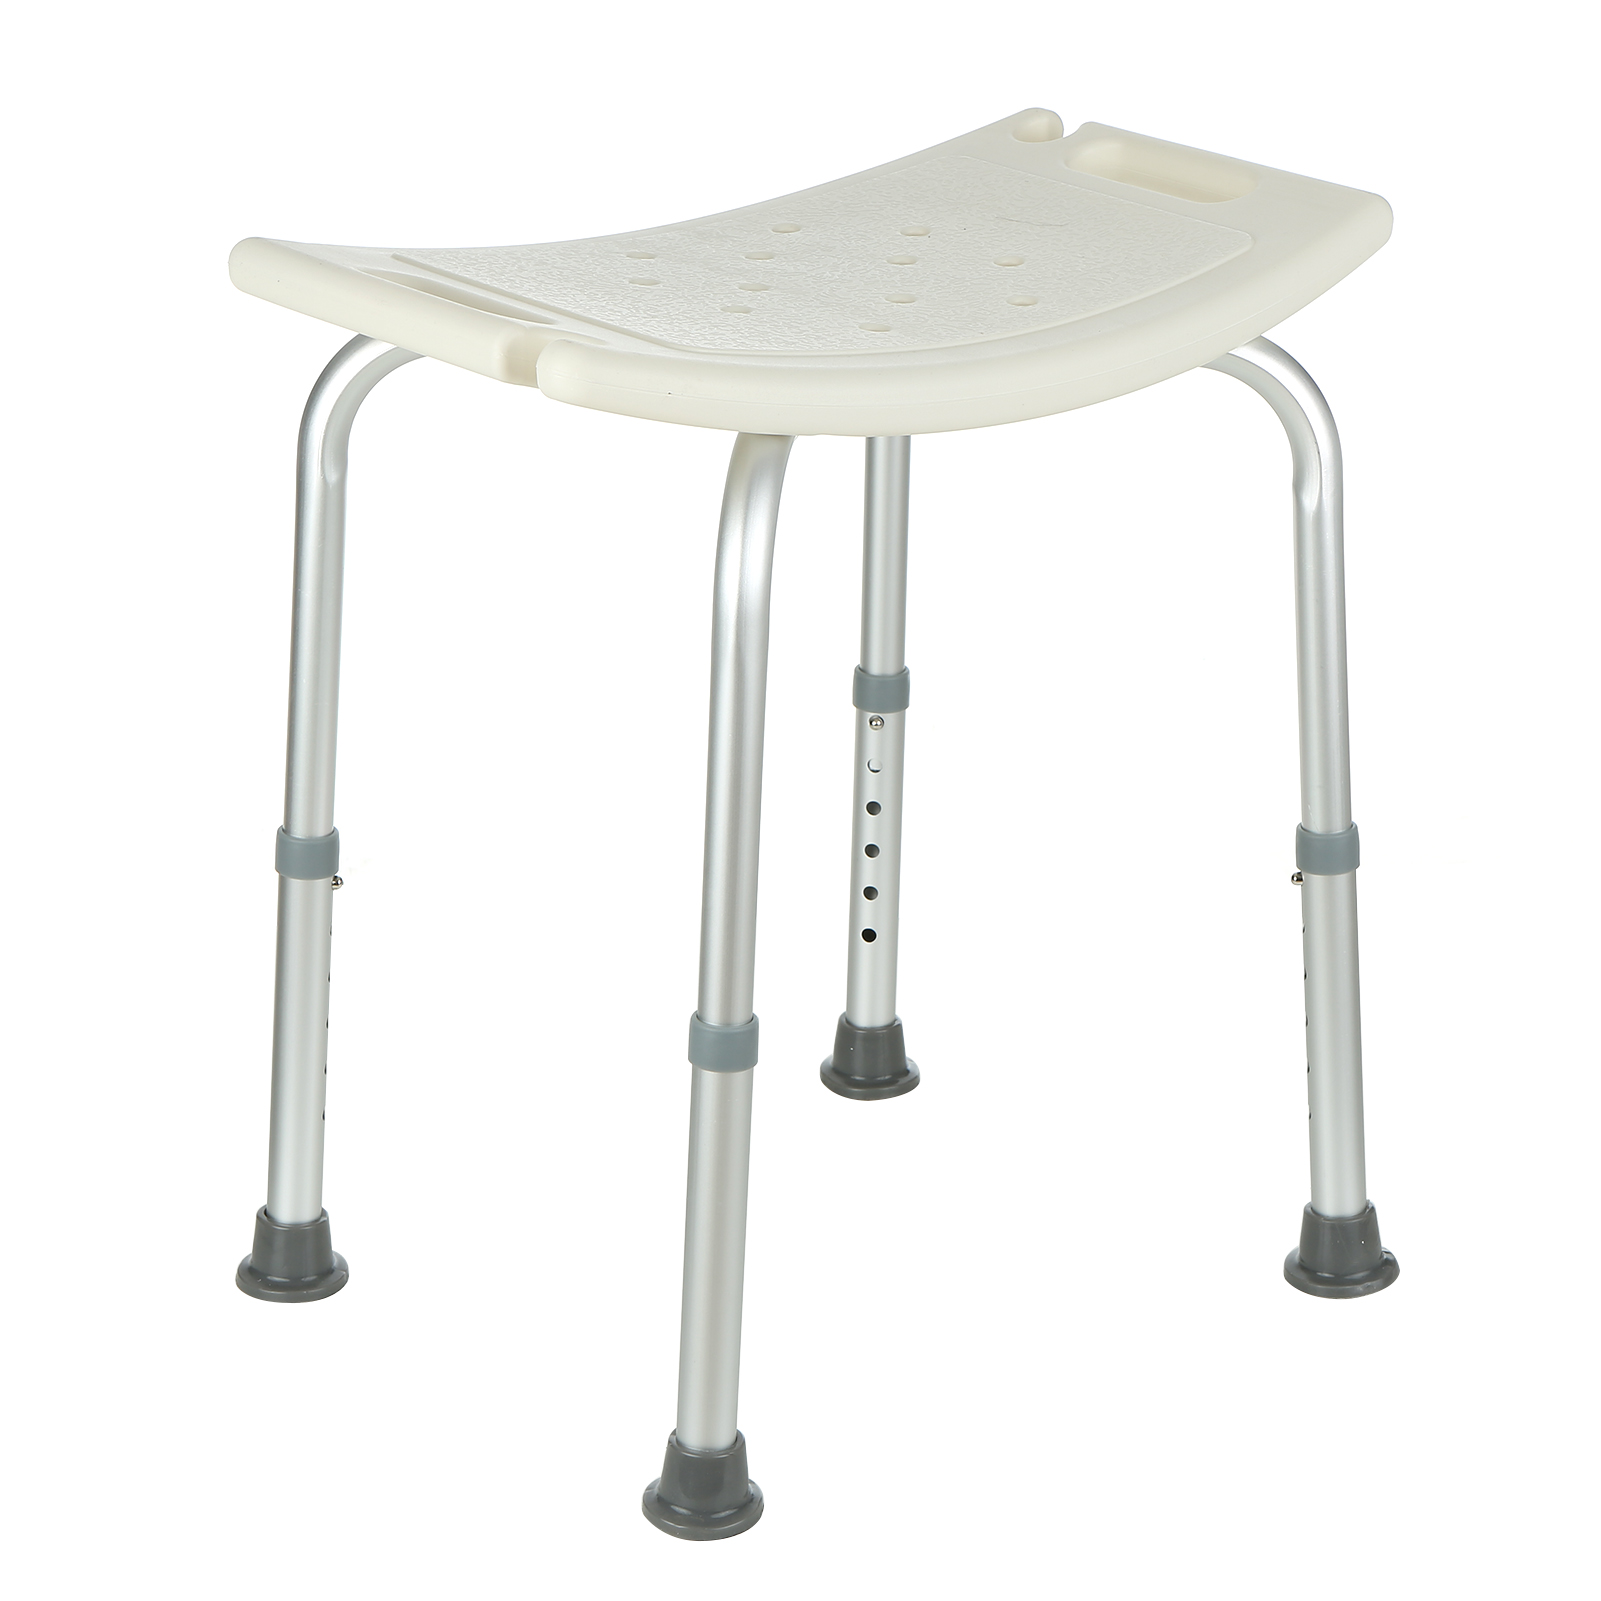 Bench-Stool-Seat Shower-Chair Bath-Tub Non-Slip Elderly And Height 7-Gears Adjustable